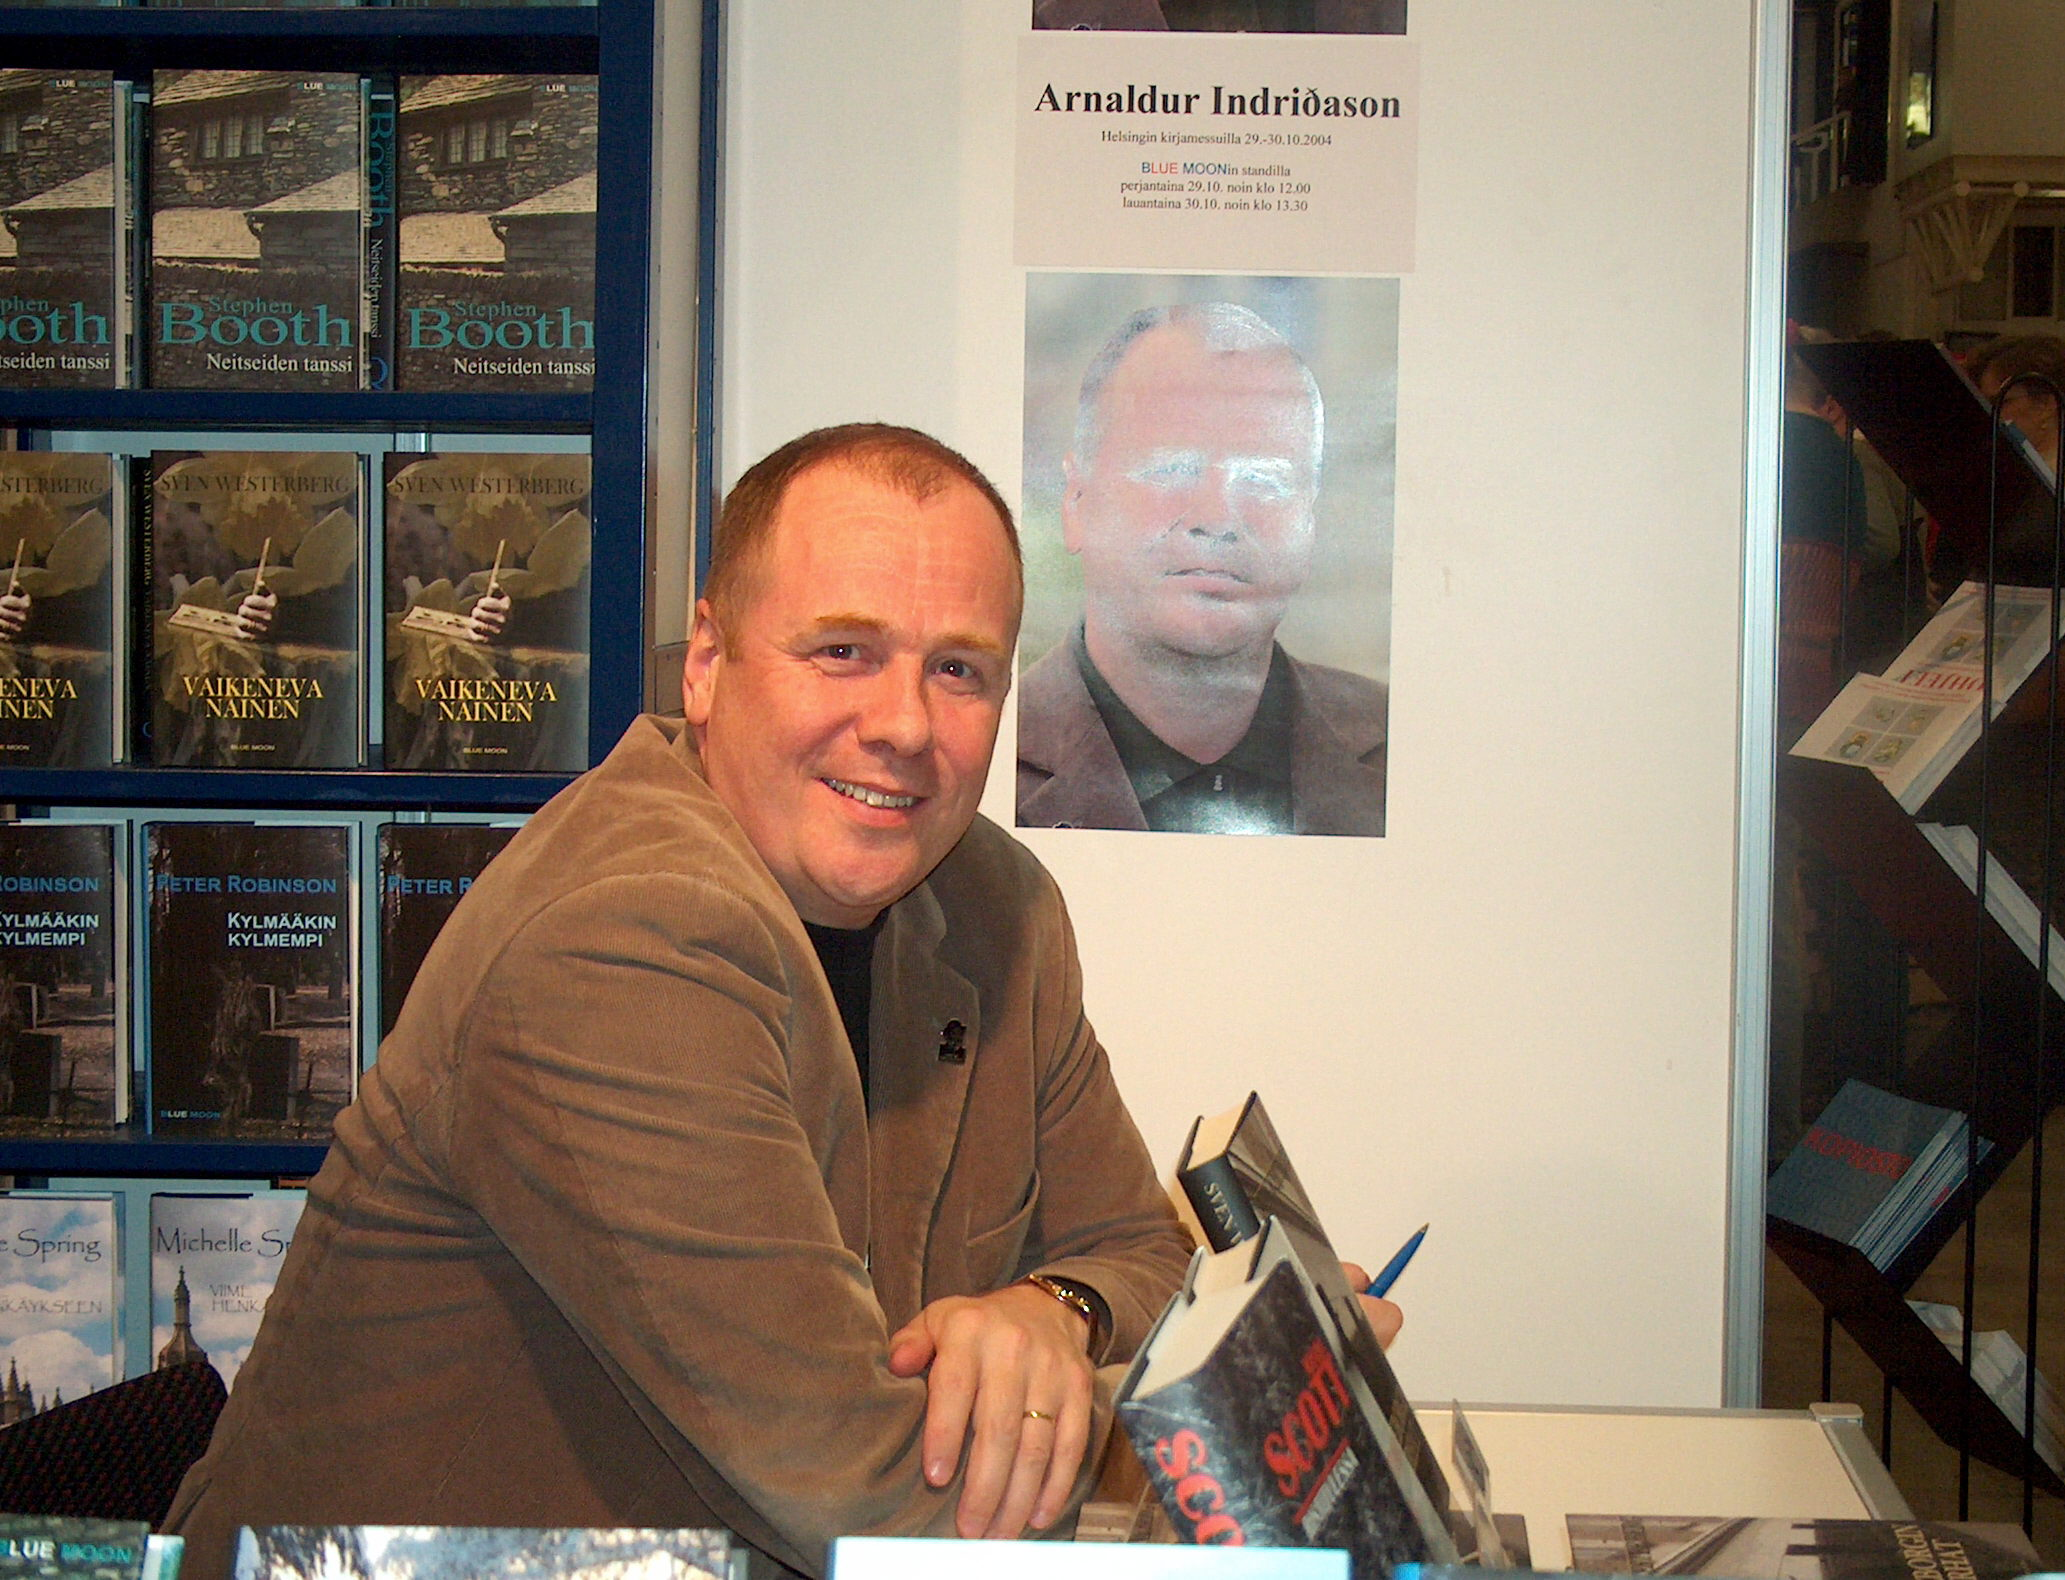 Arnaldur Indriðason at the [[Helsinki Book Fair]], Finland, 2004